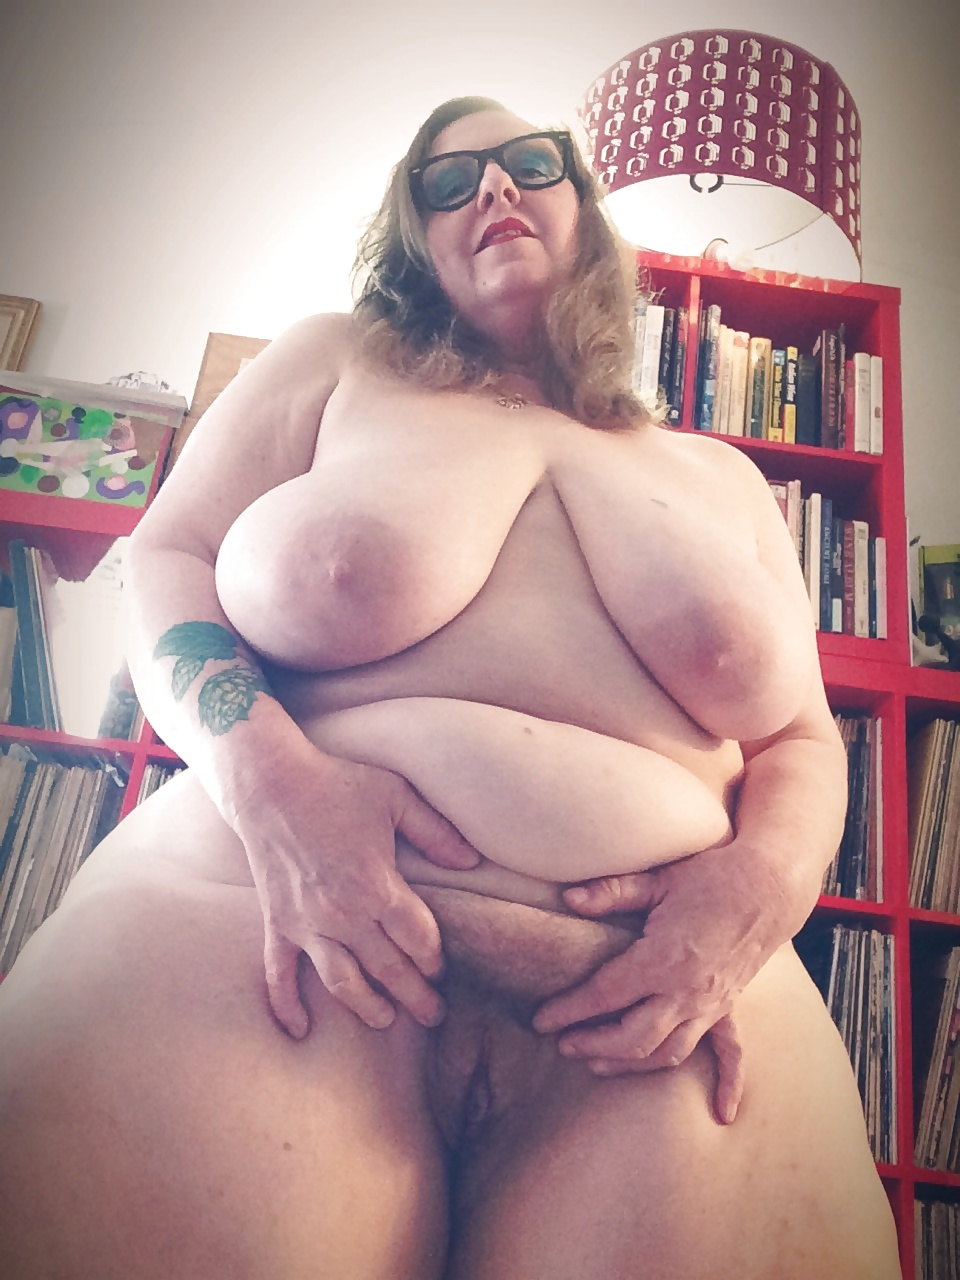 Bbw escort in kc i ducked bare and creampied